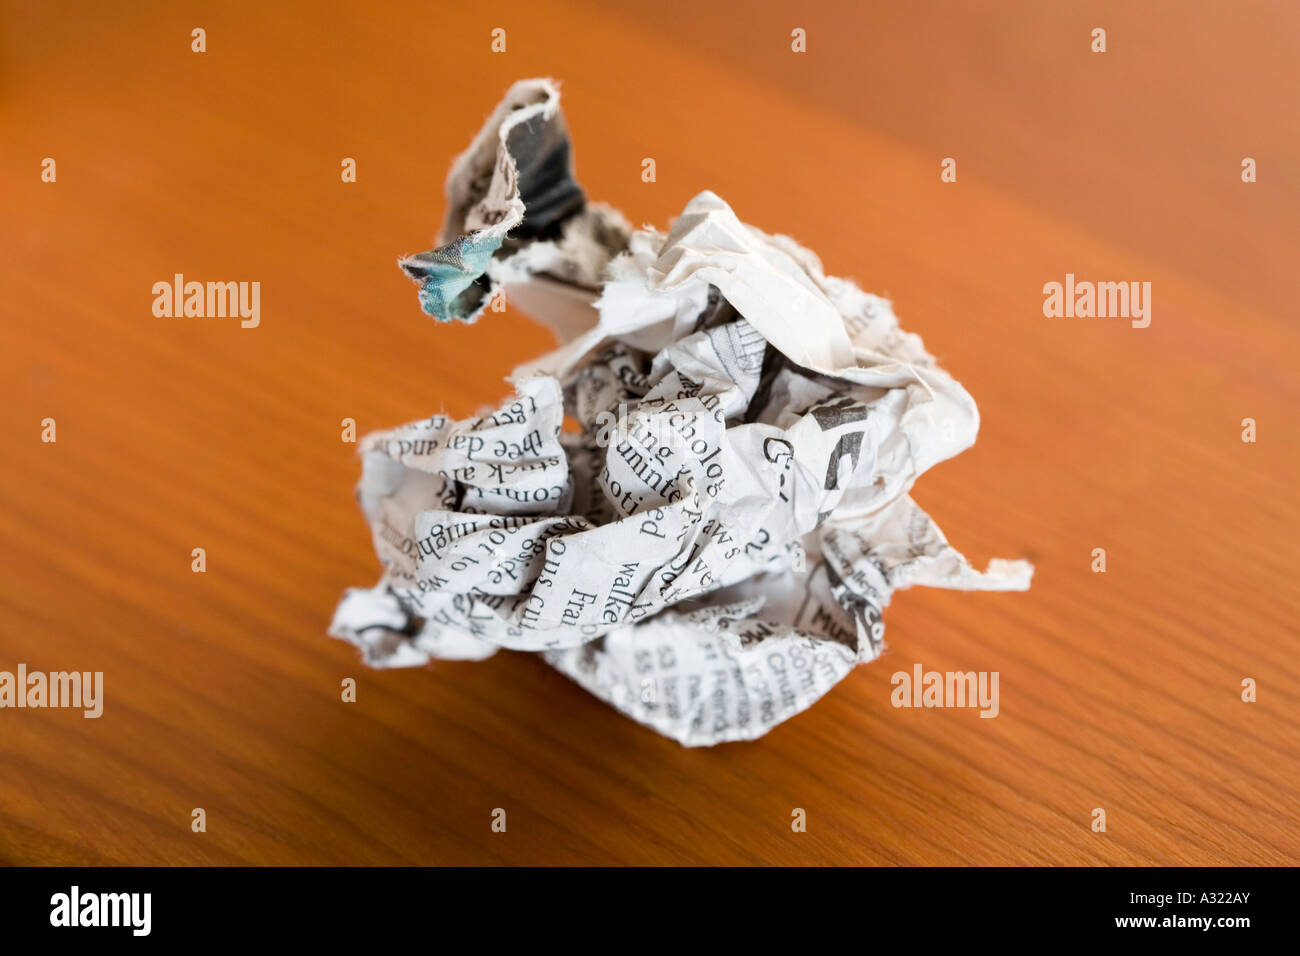 Crumpled newspaper on a table - Stock Image